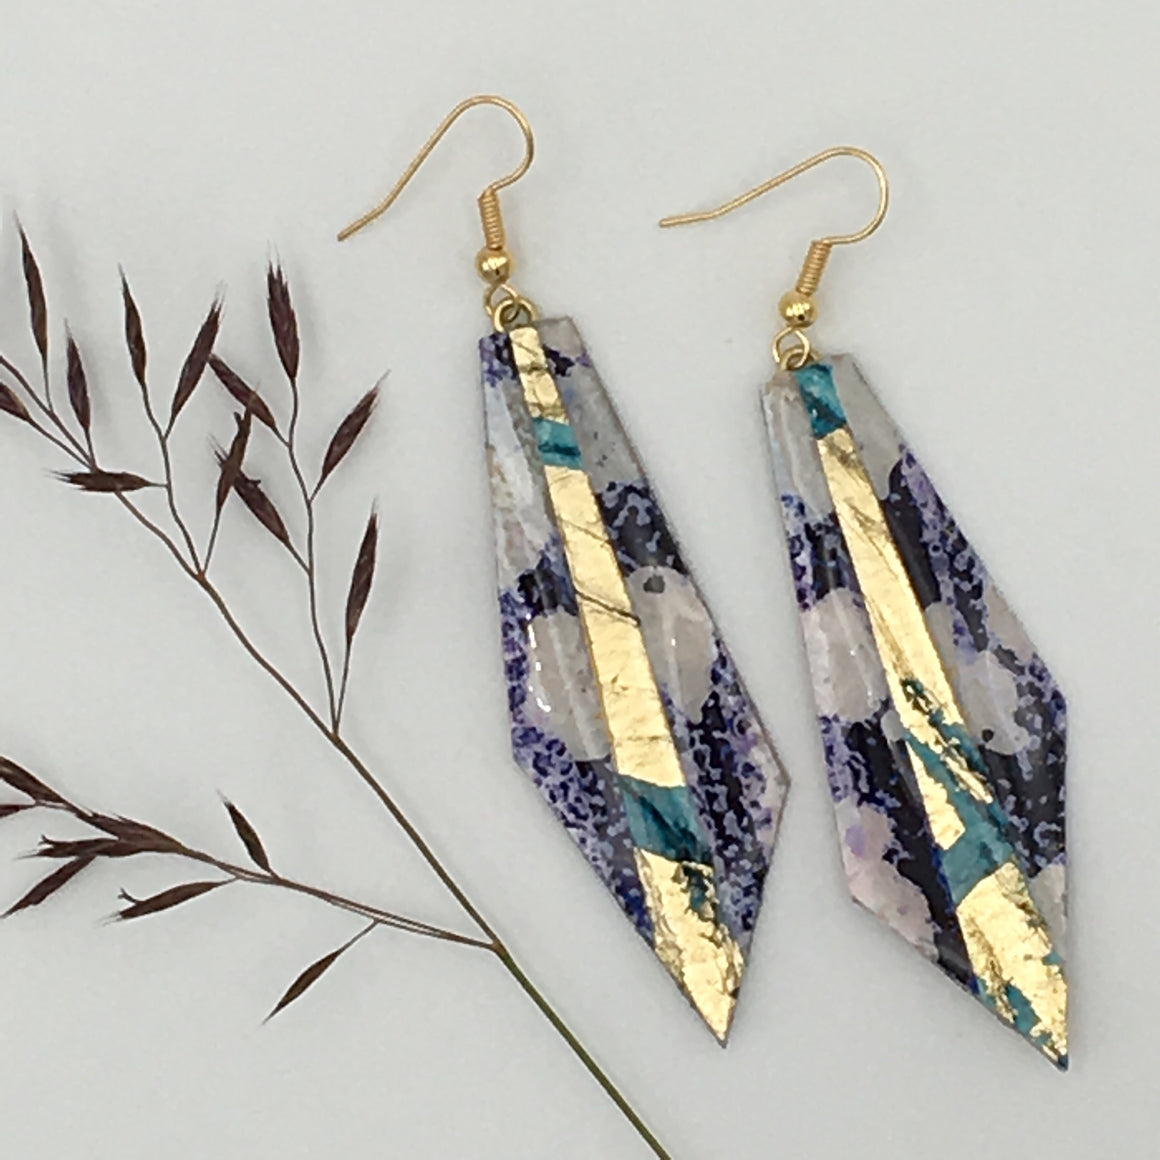 Beulah batik textile earrings in indigo/blue/gold